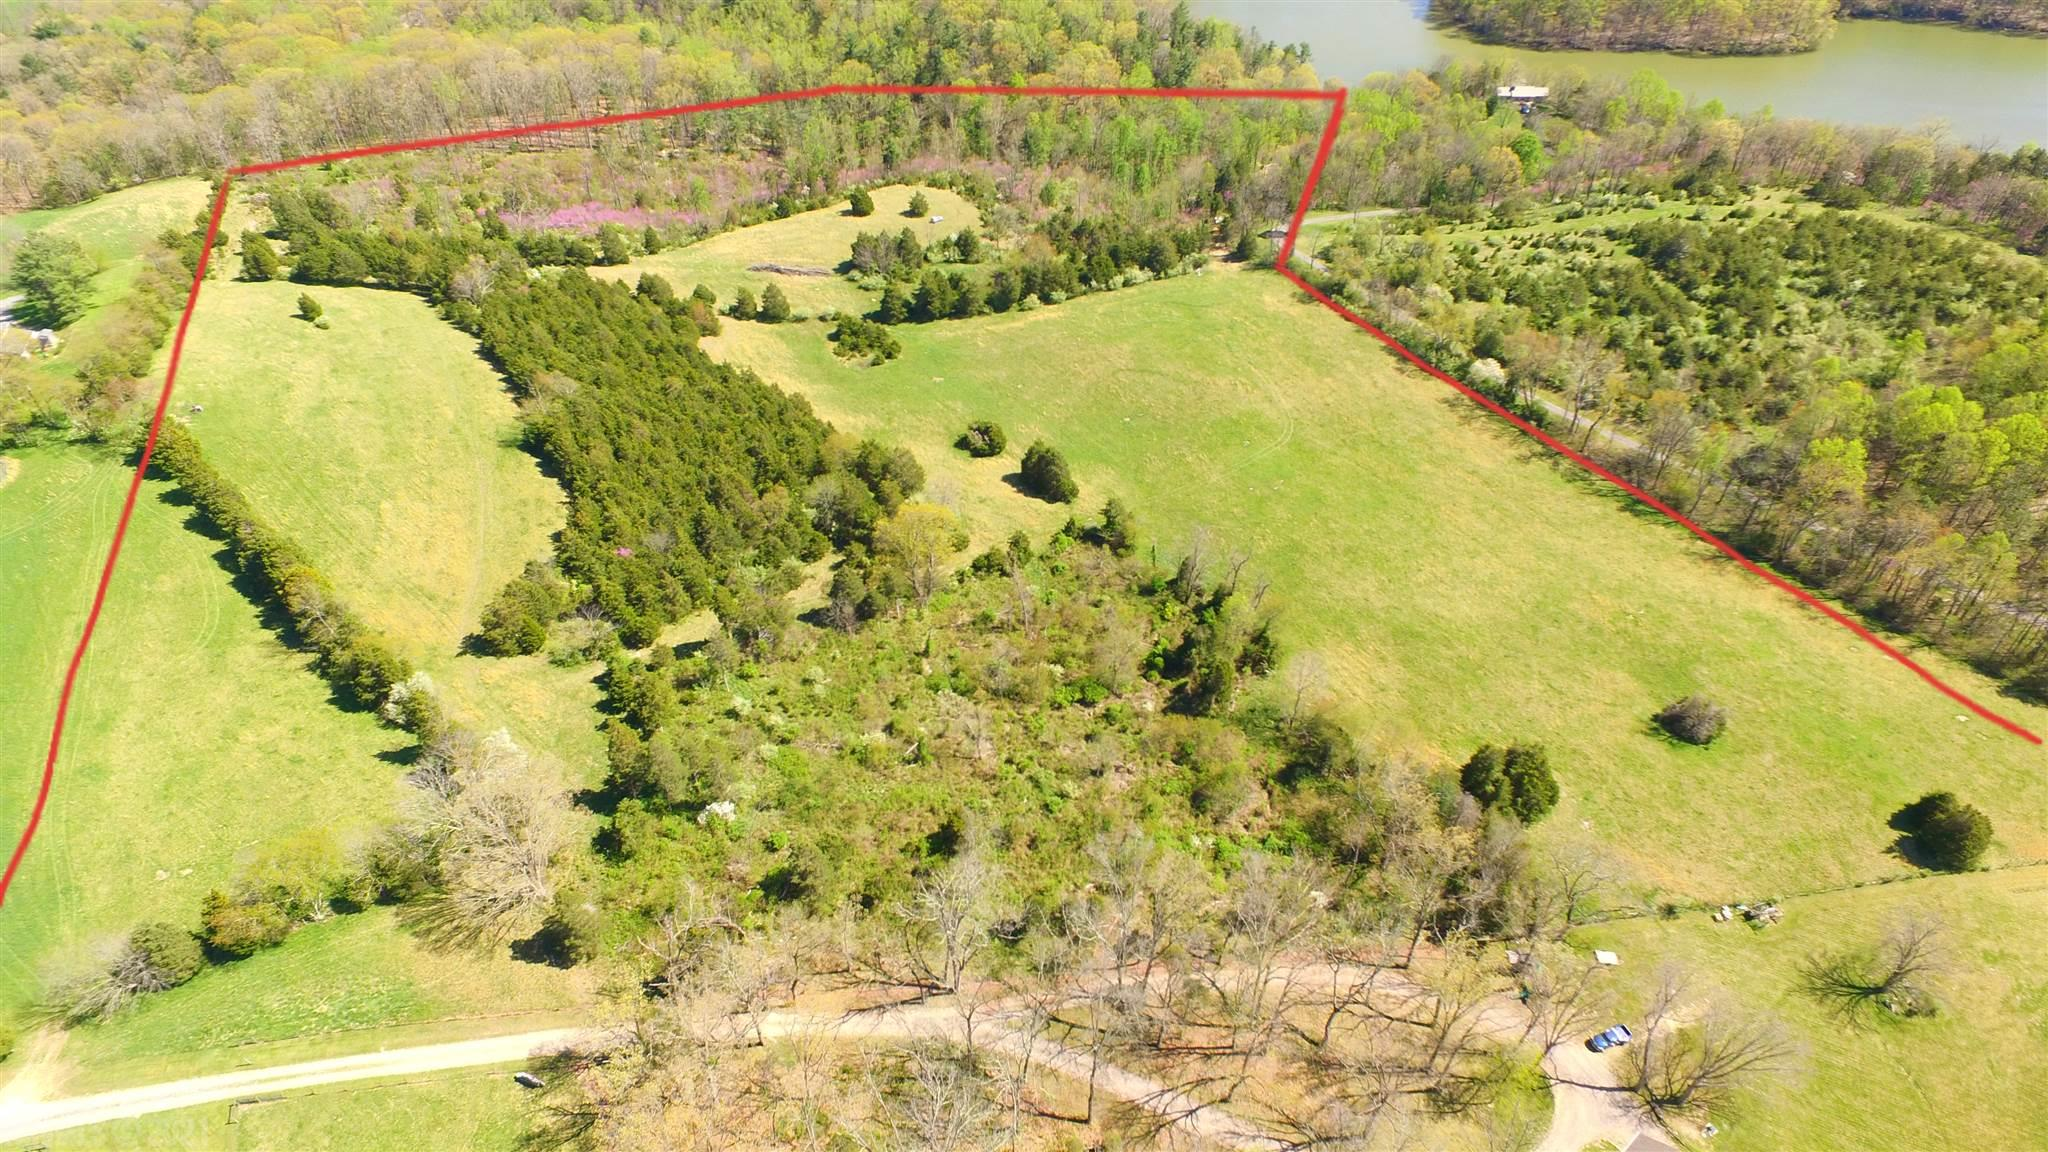 Beautiful 34.03 acres of land with multiple building sites, killer views, and lake access.  Very private yet so convenient and near new Hurston equestrian center.  Perfect for custom home and some horses.  Has lake front on Peak Creek and several years ago obtained dock permit but never built one.  Surveys and documents available.  Lovely land, lovely location.